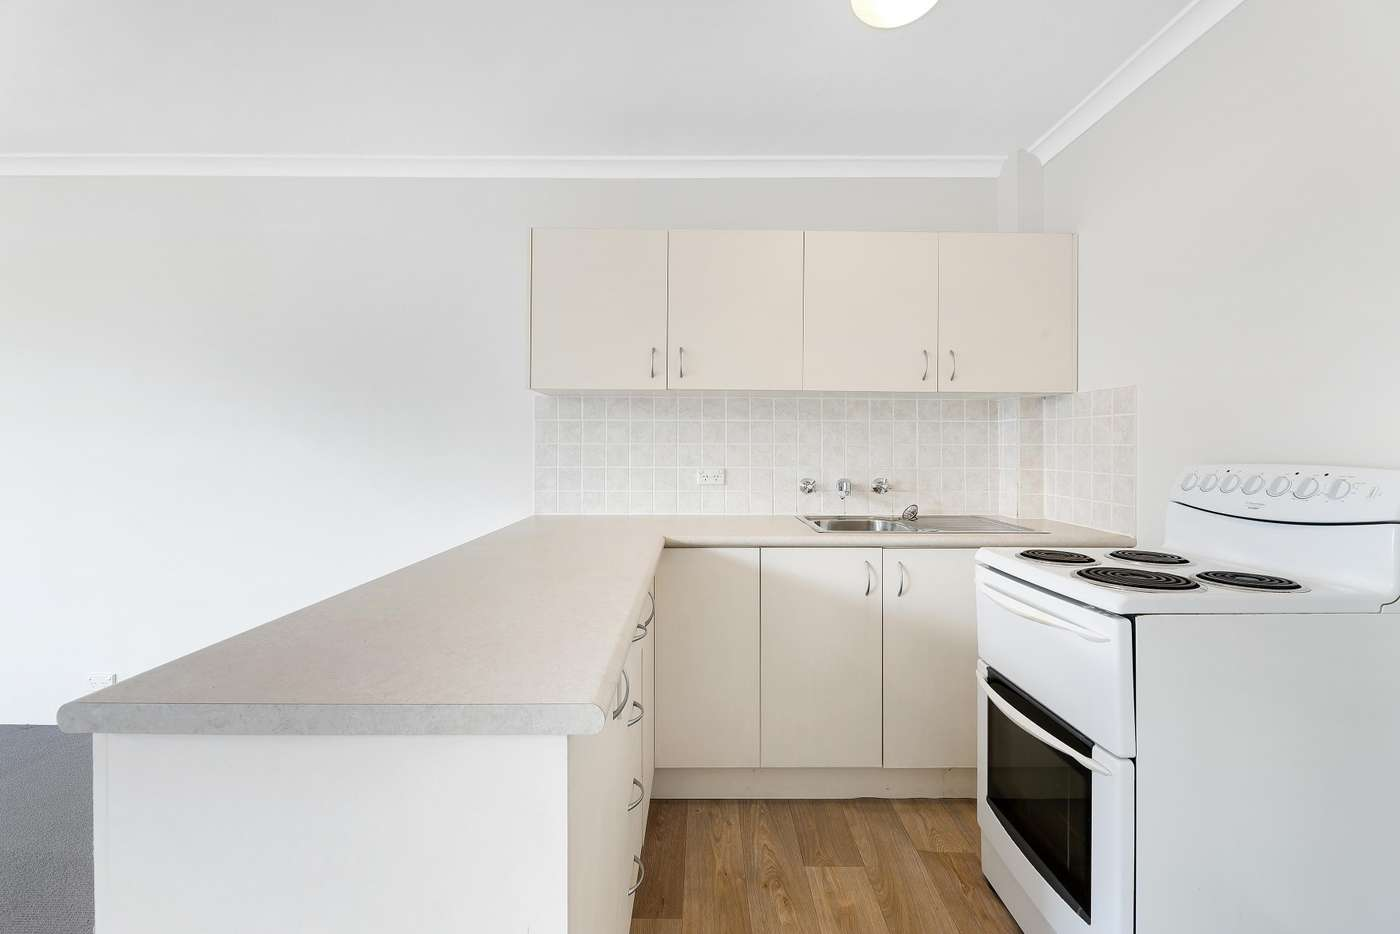 Main view of Homely apartment listing, 11/101 Gerard Street, Cremorne NSW 2090